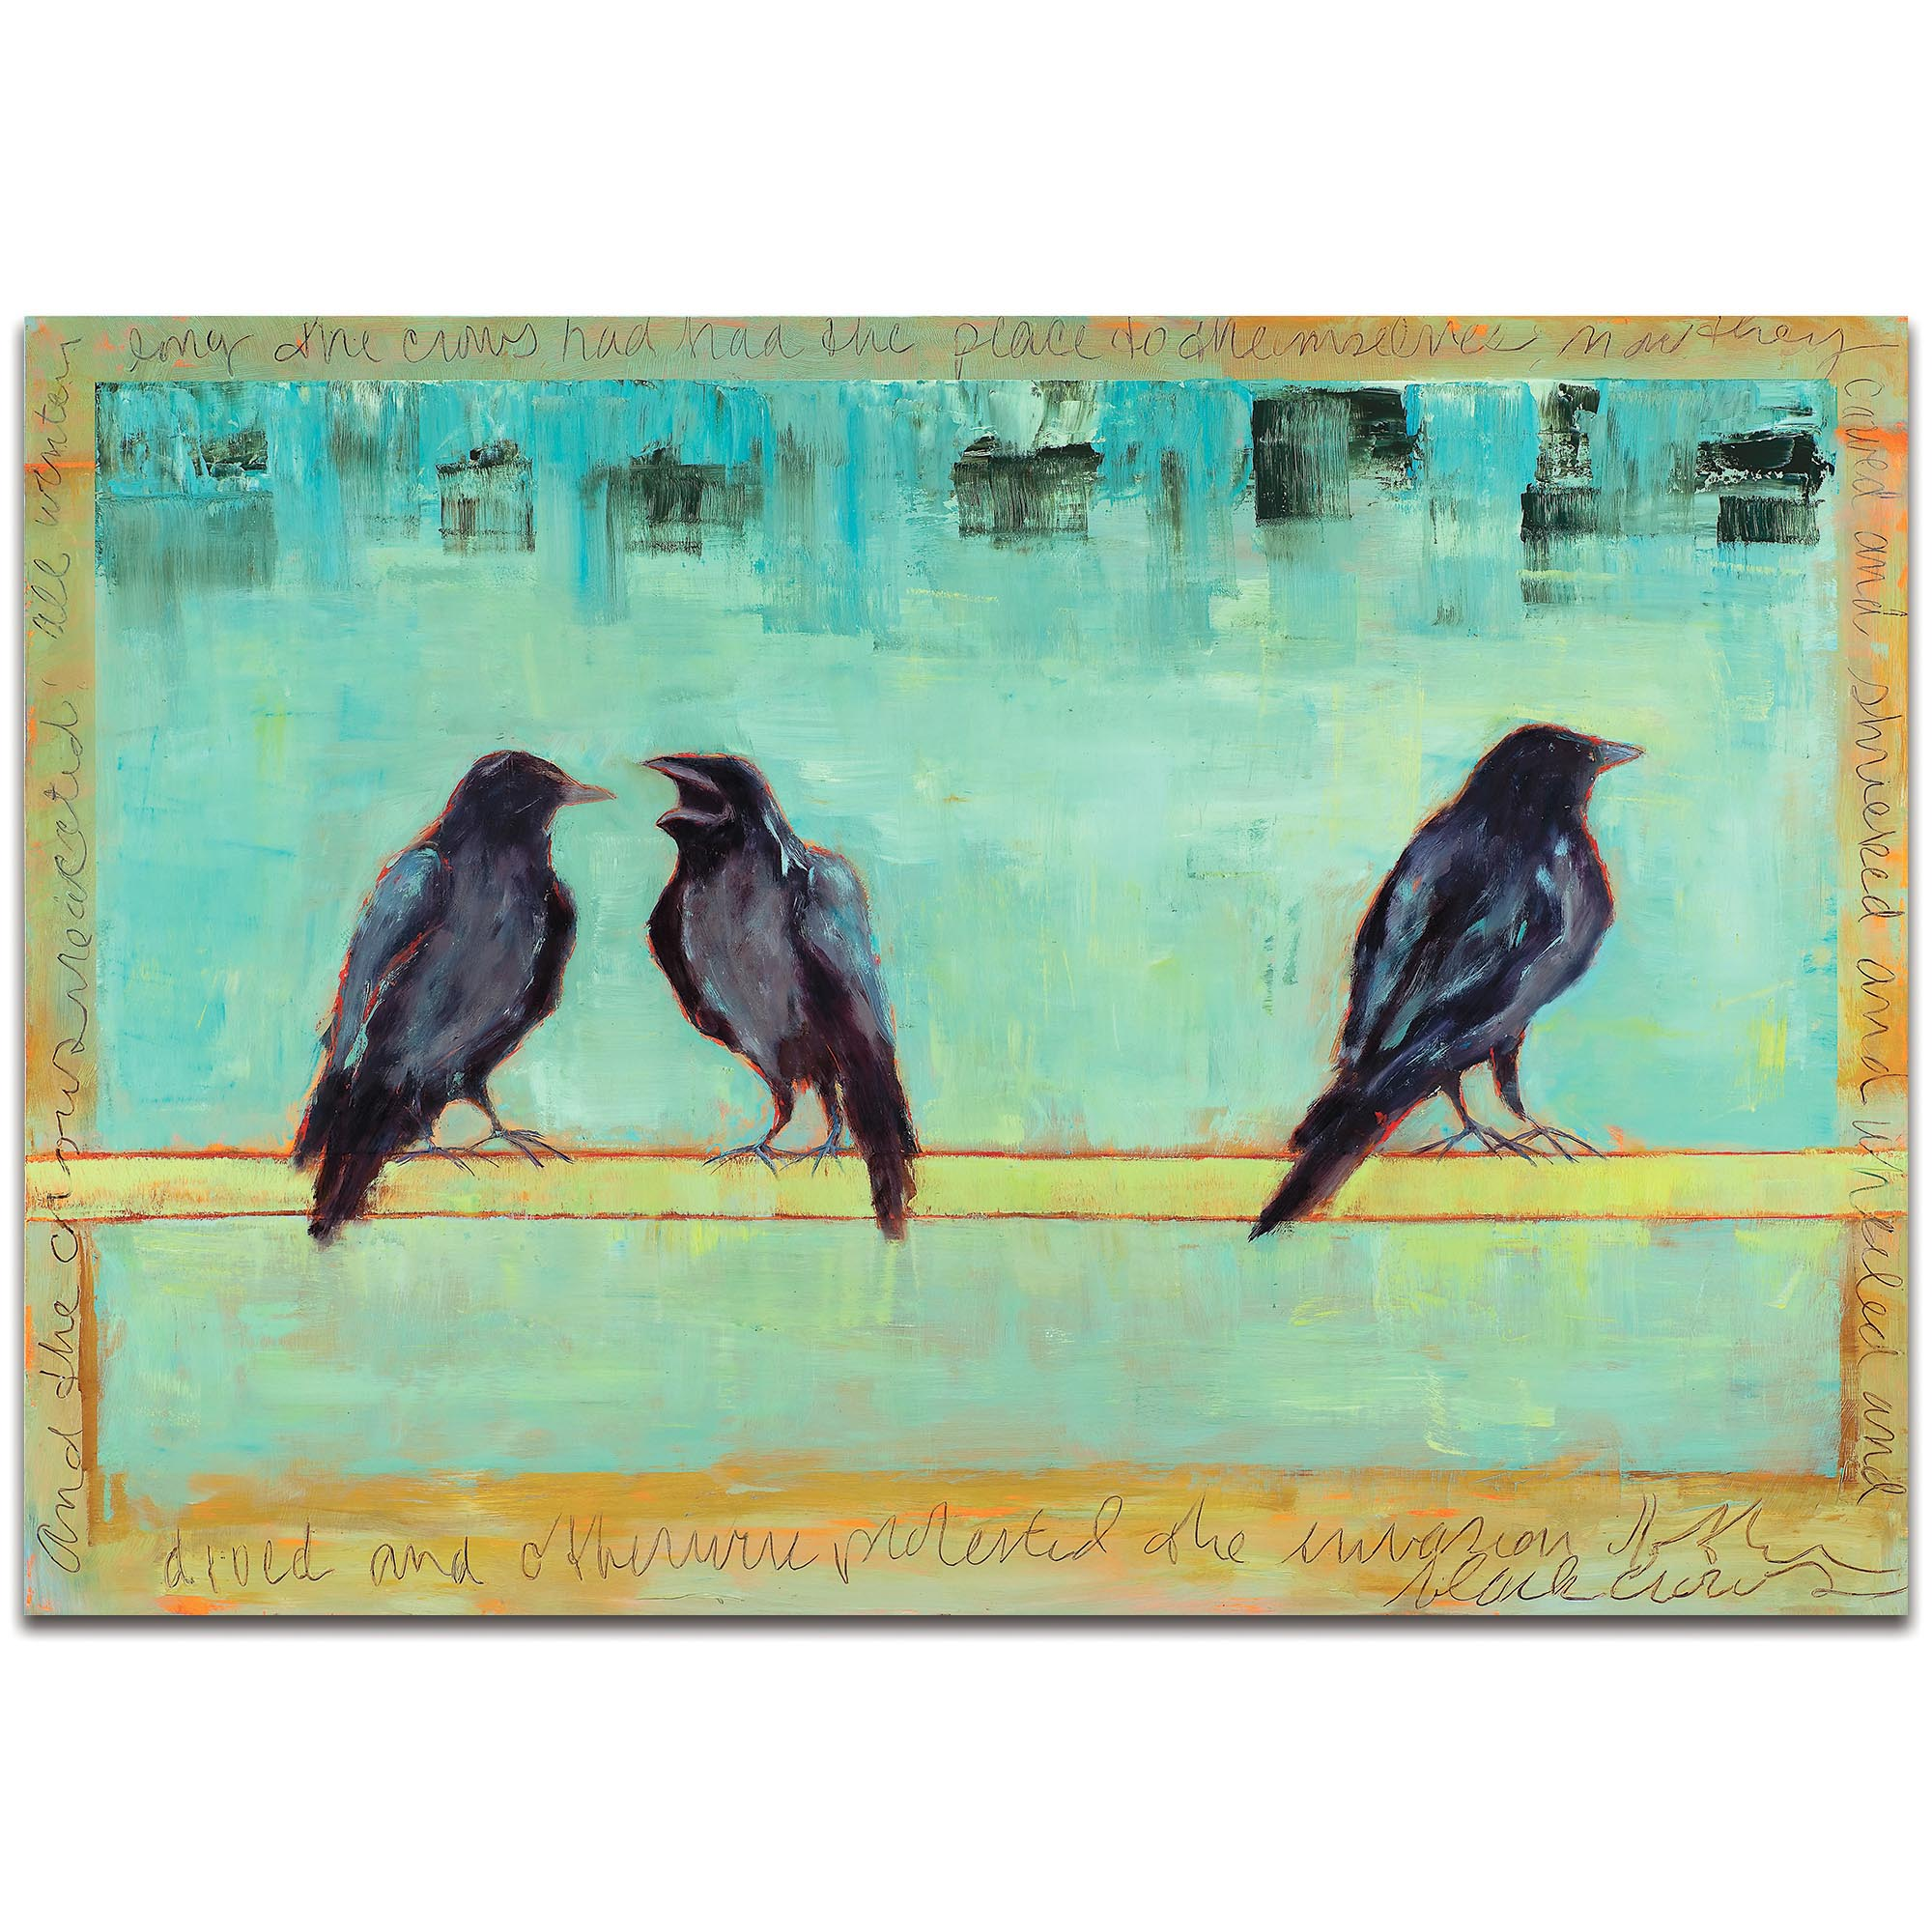 Contemporary Wall Art 'Crow Bar 2' - Urban Birds Decor on Metal or Plexiglass